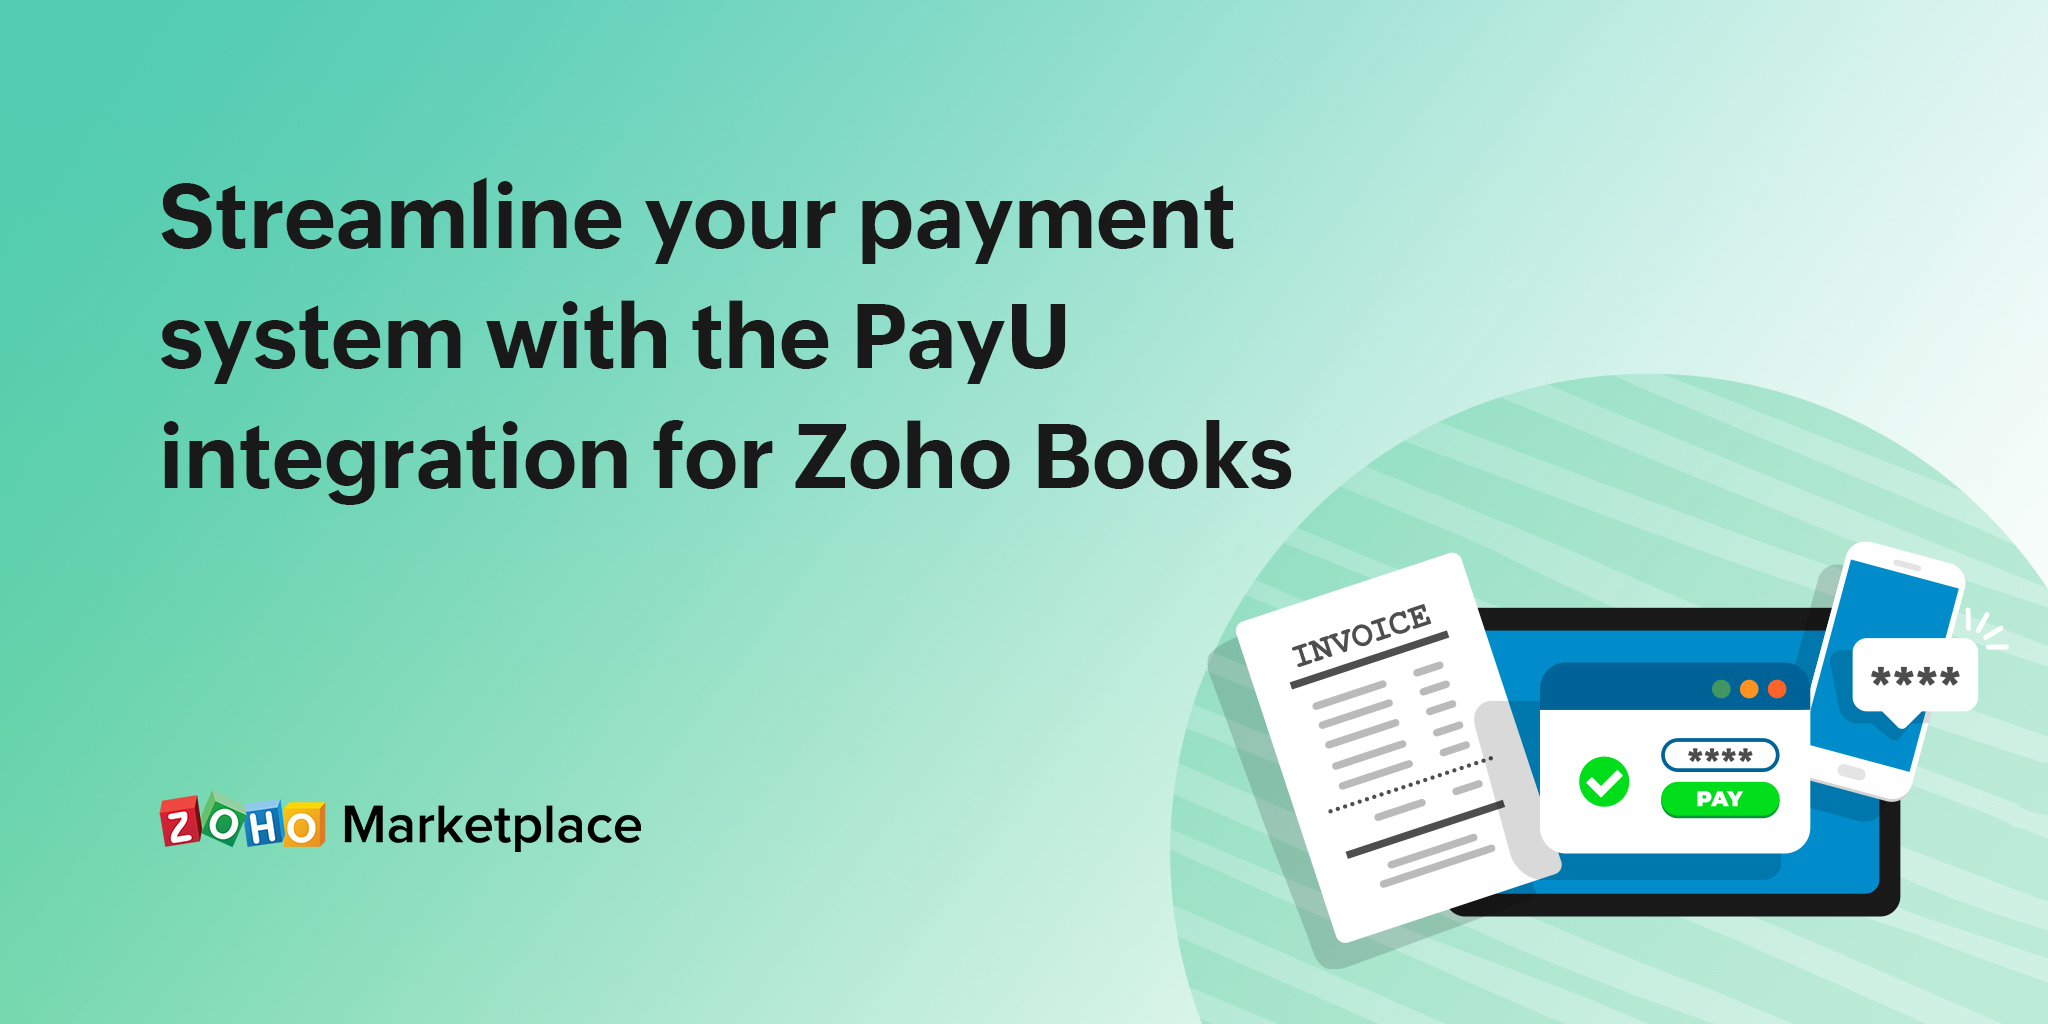 Simplify and streamline your payment system